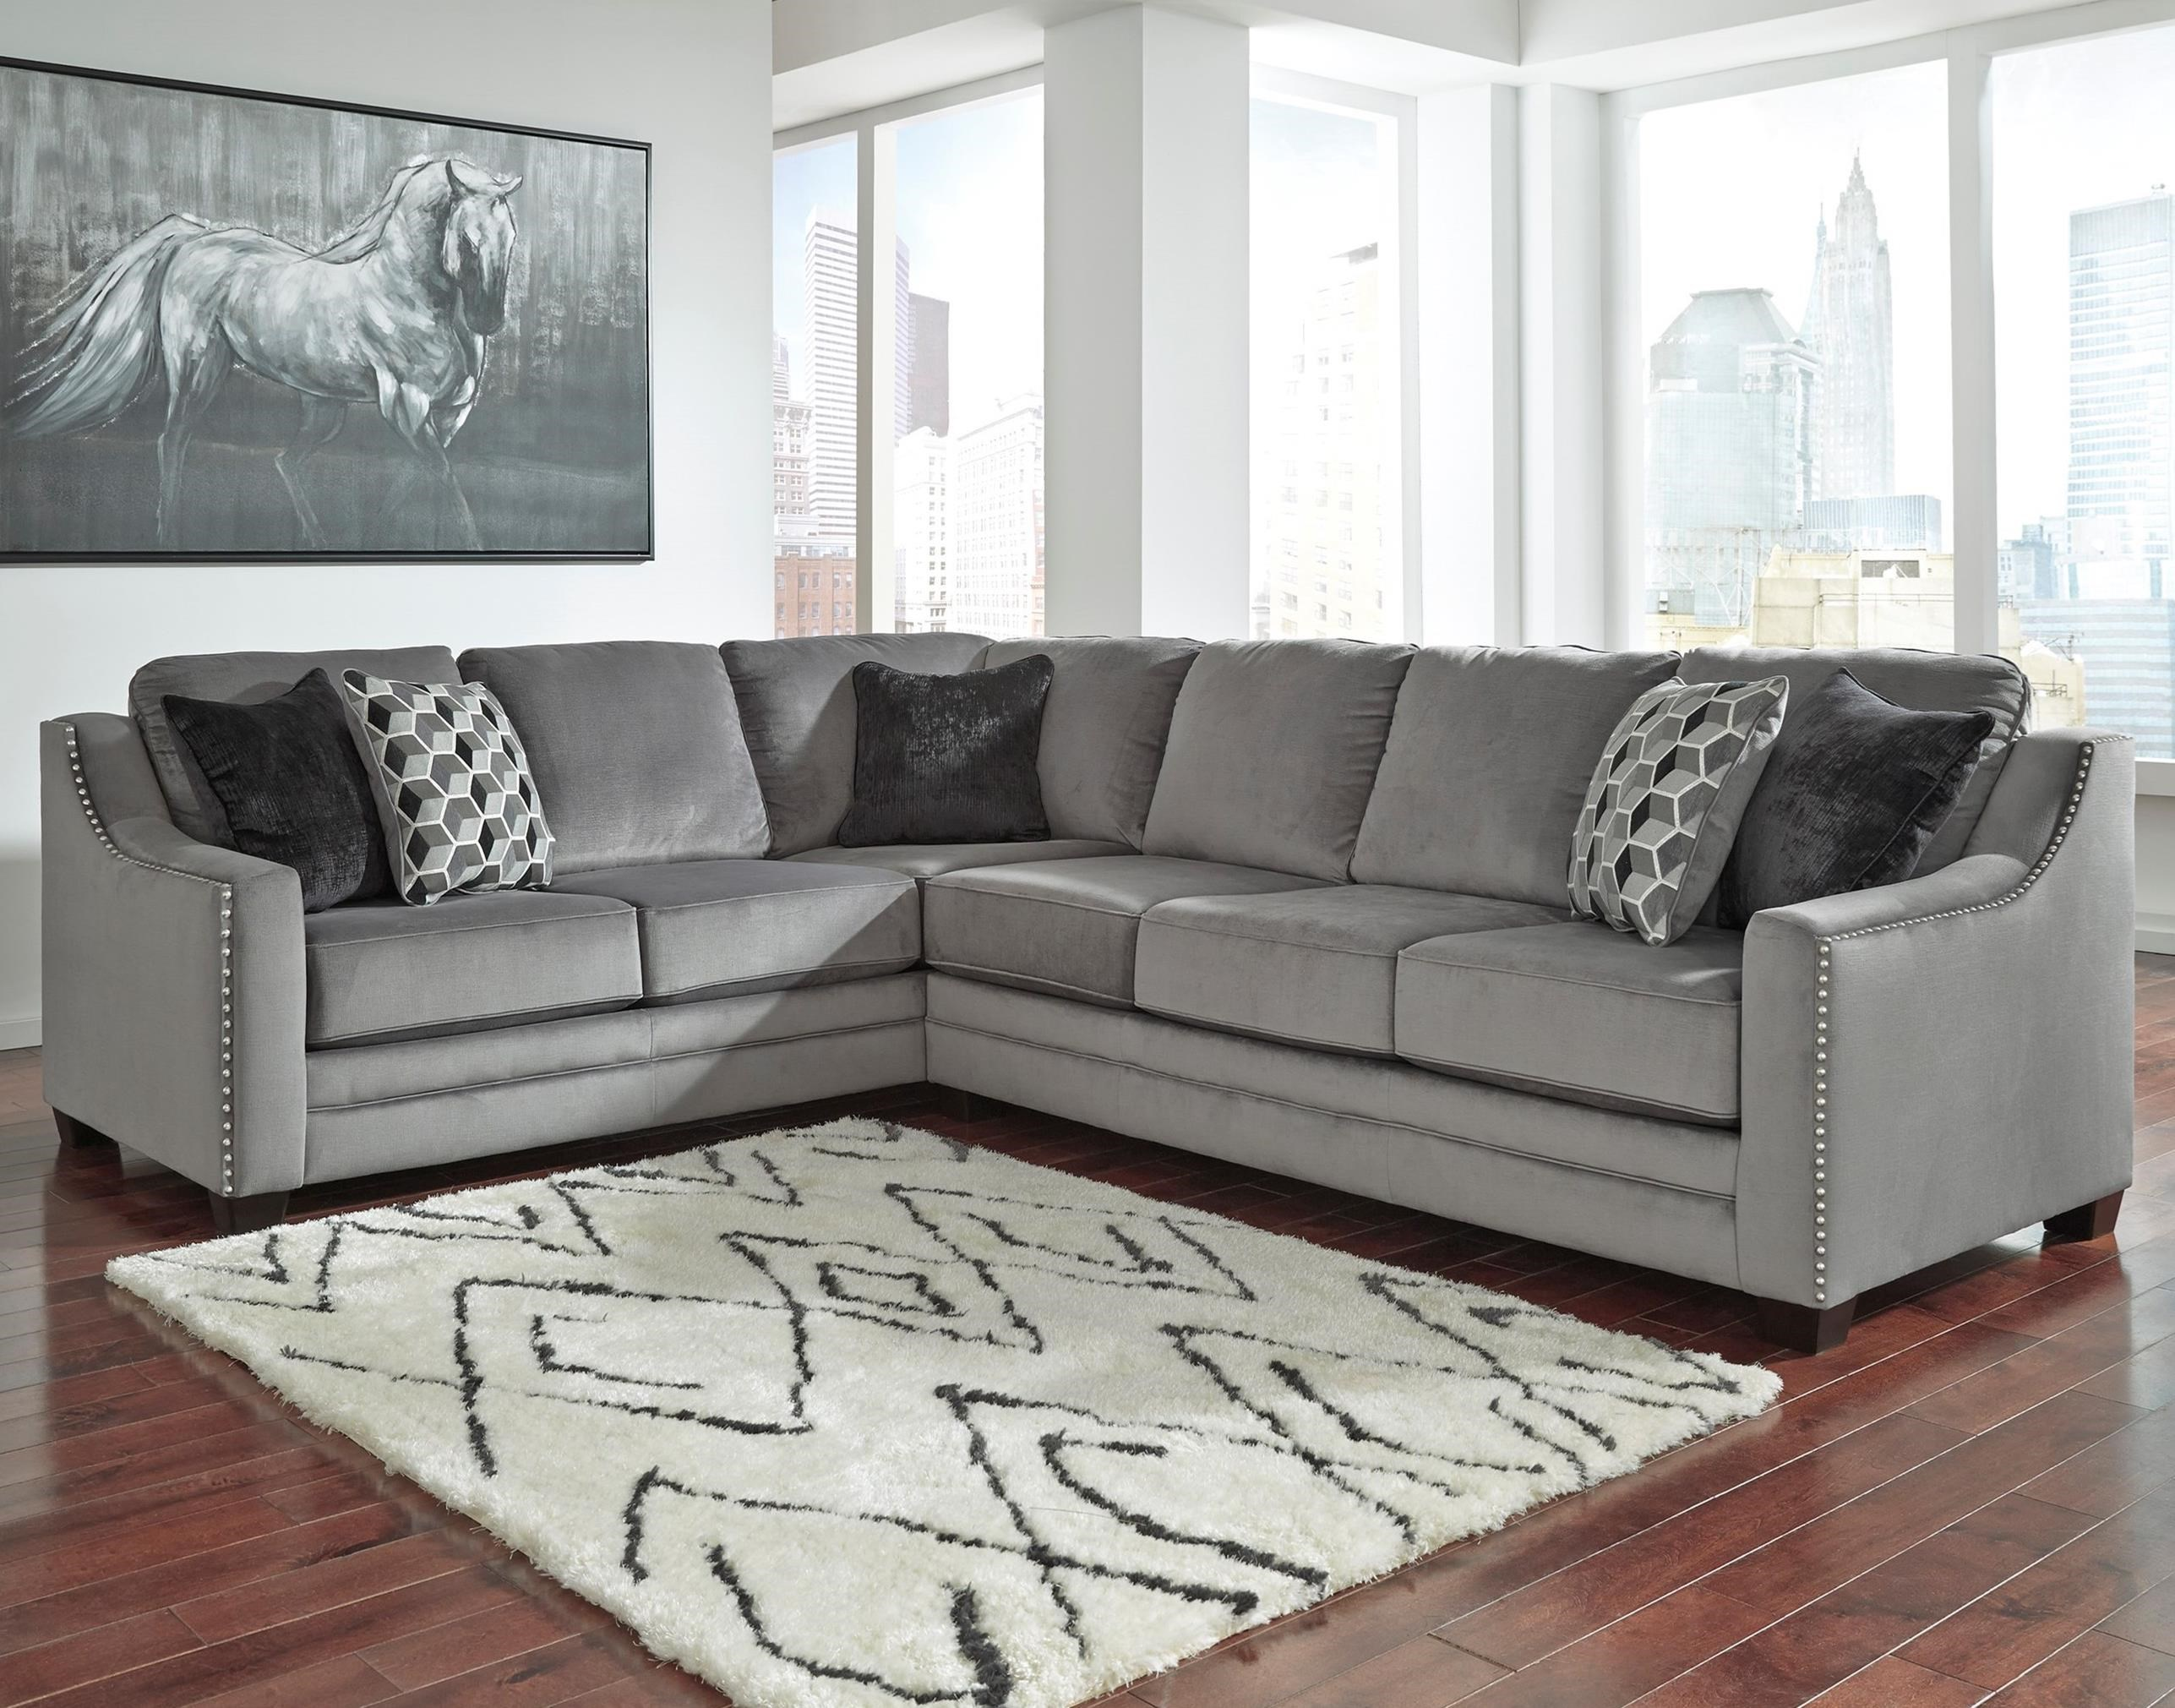 benchcraft bicknell 2piece sectional with right sofa becku0027s furniture sectional sofas